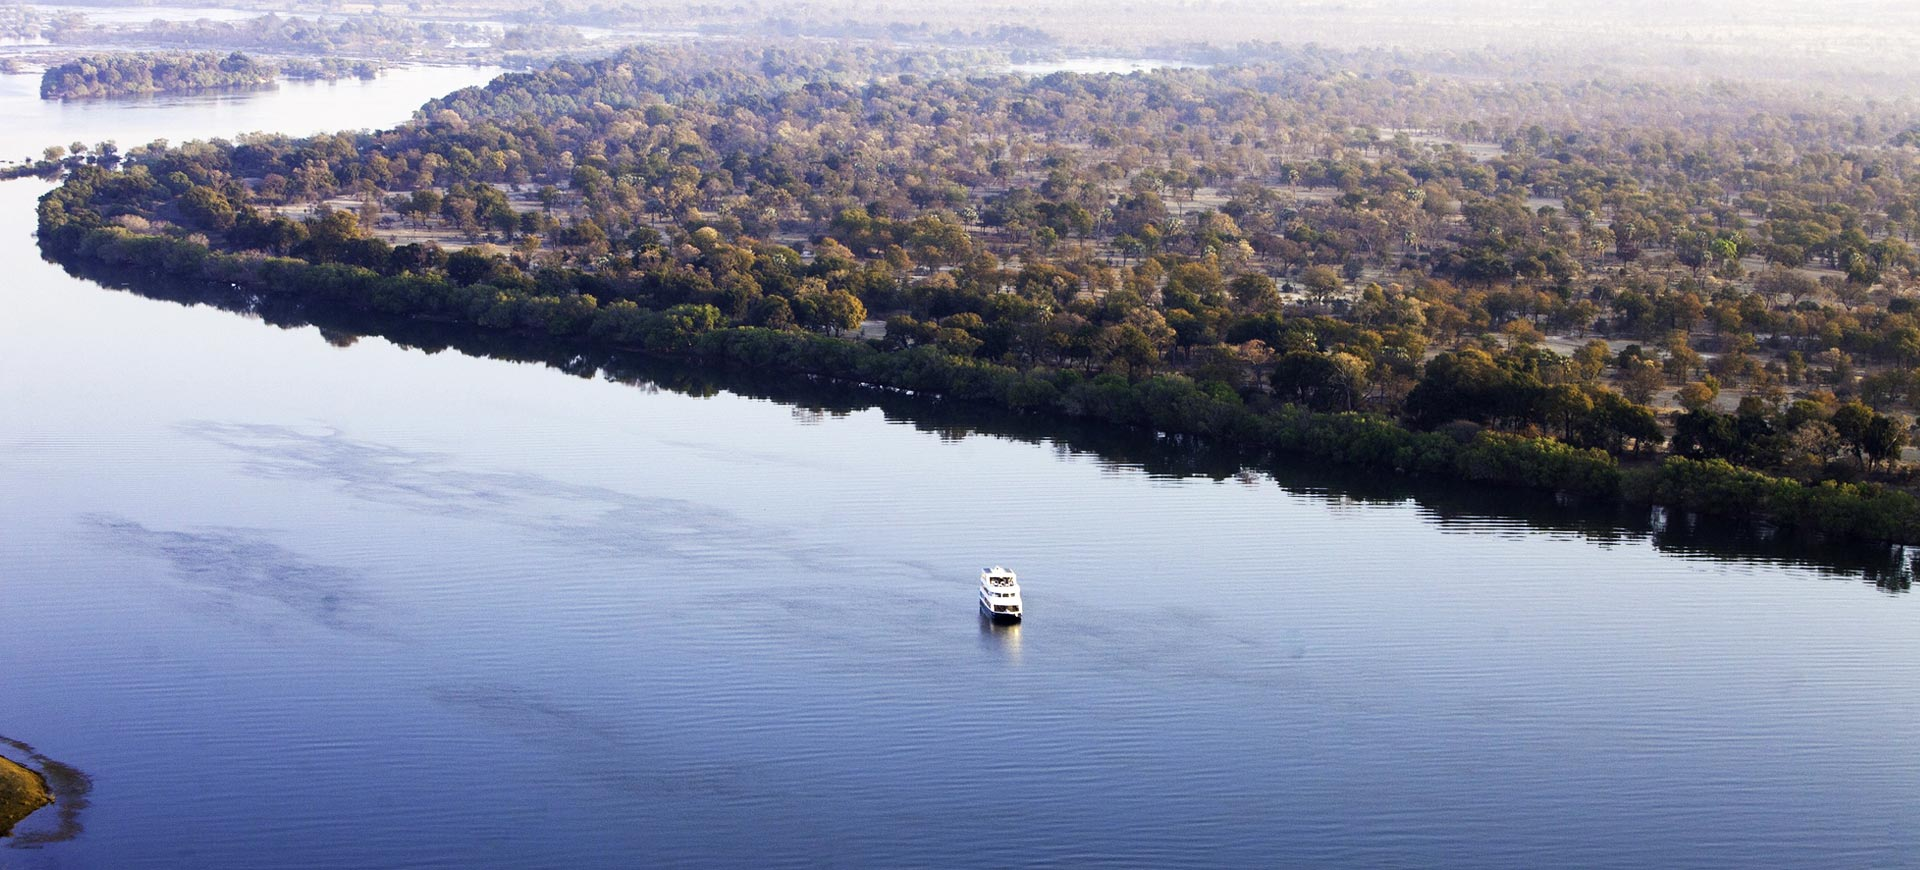 Conference Zambezi Sunset Cruises